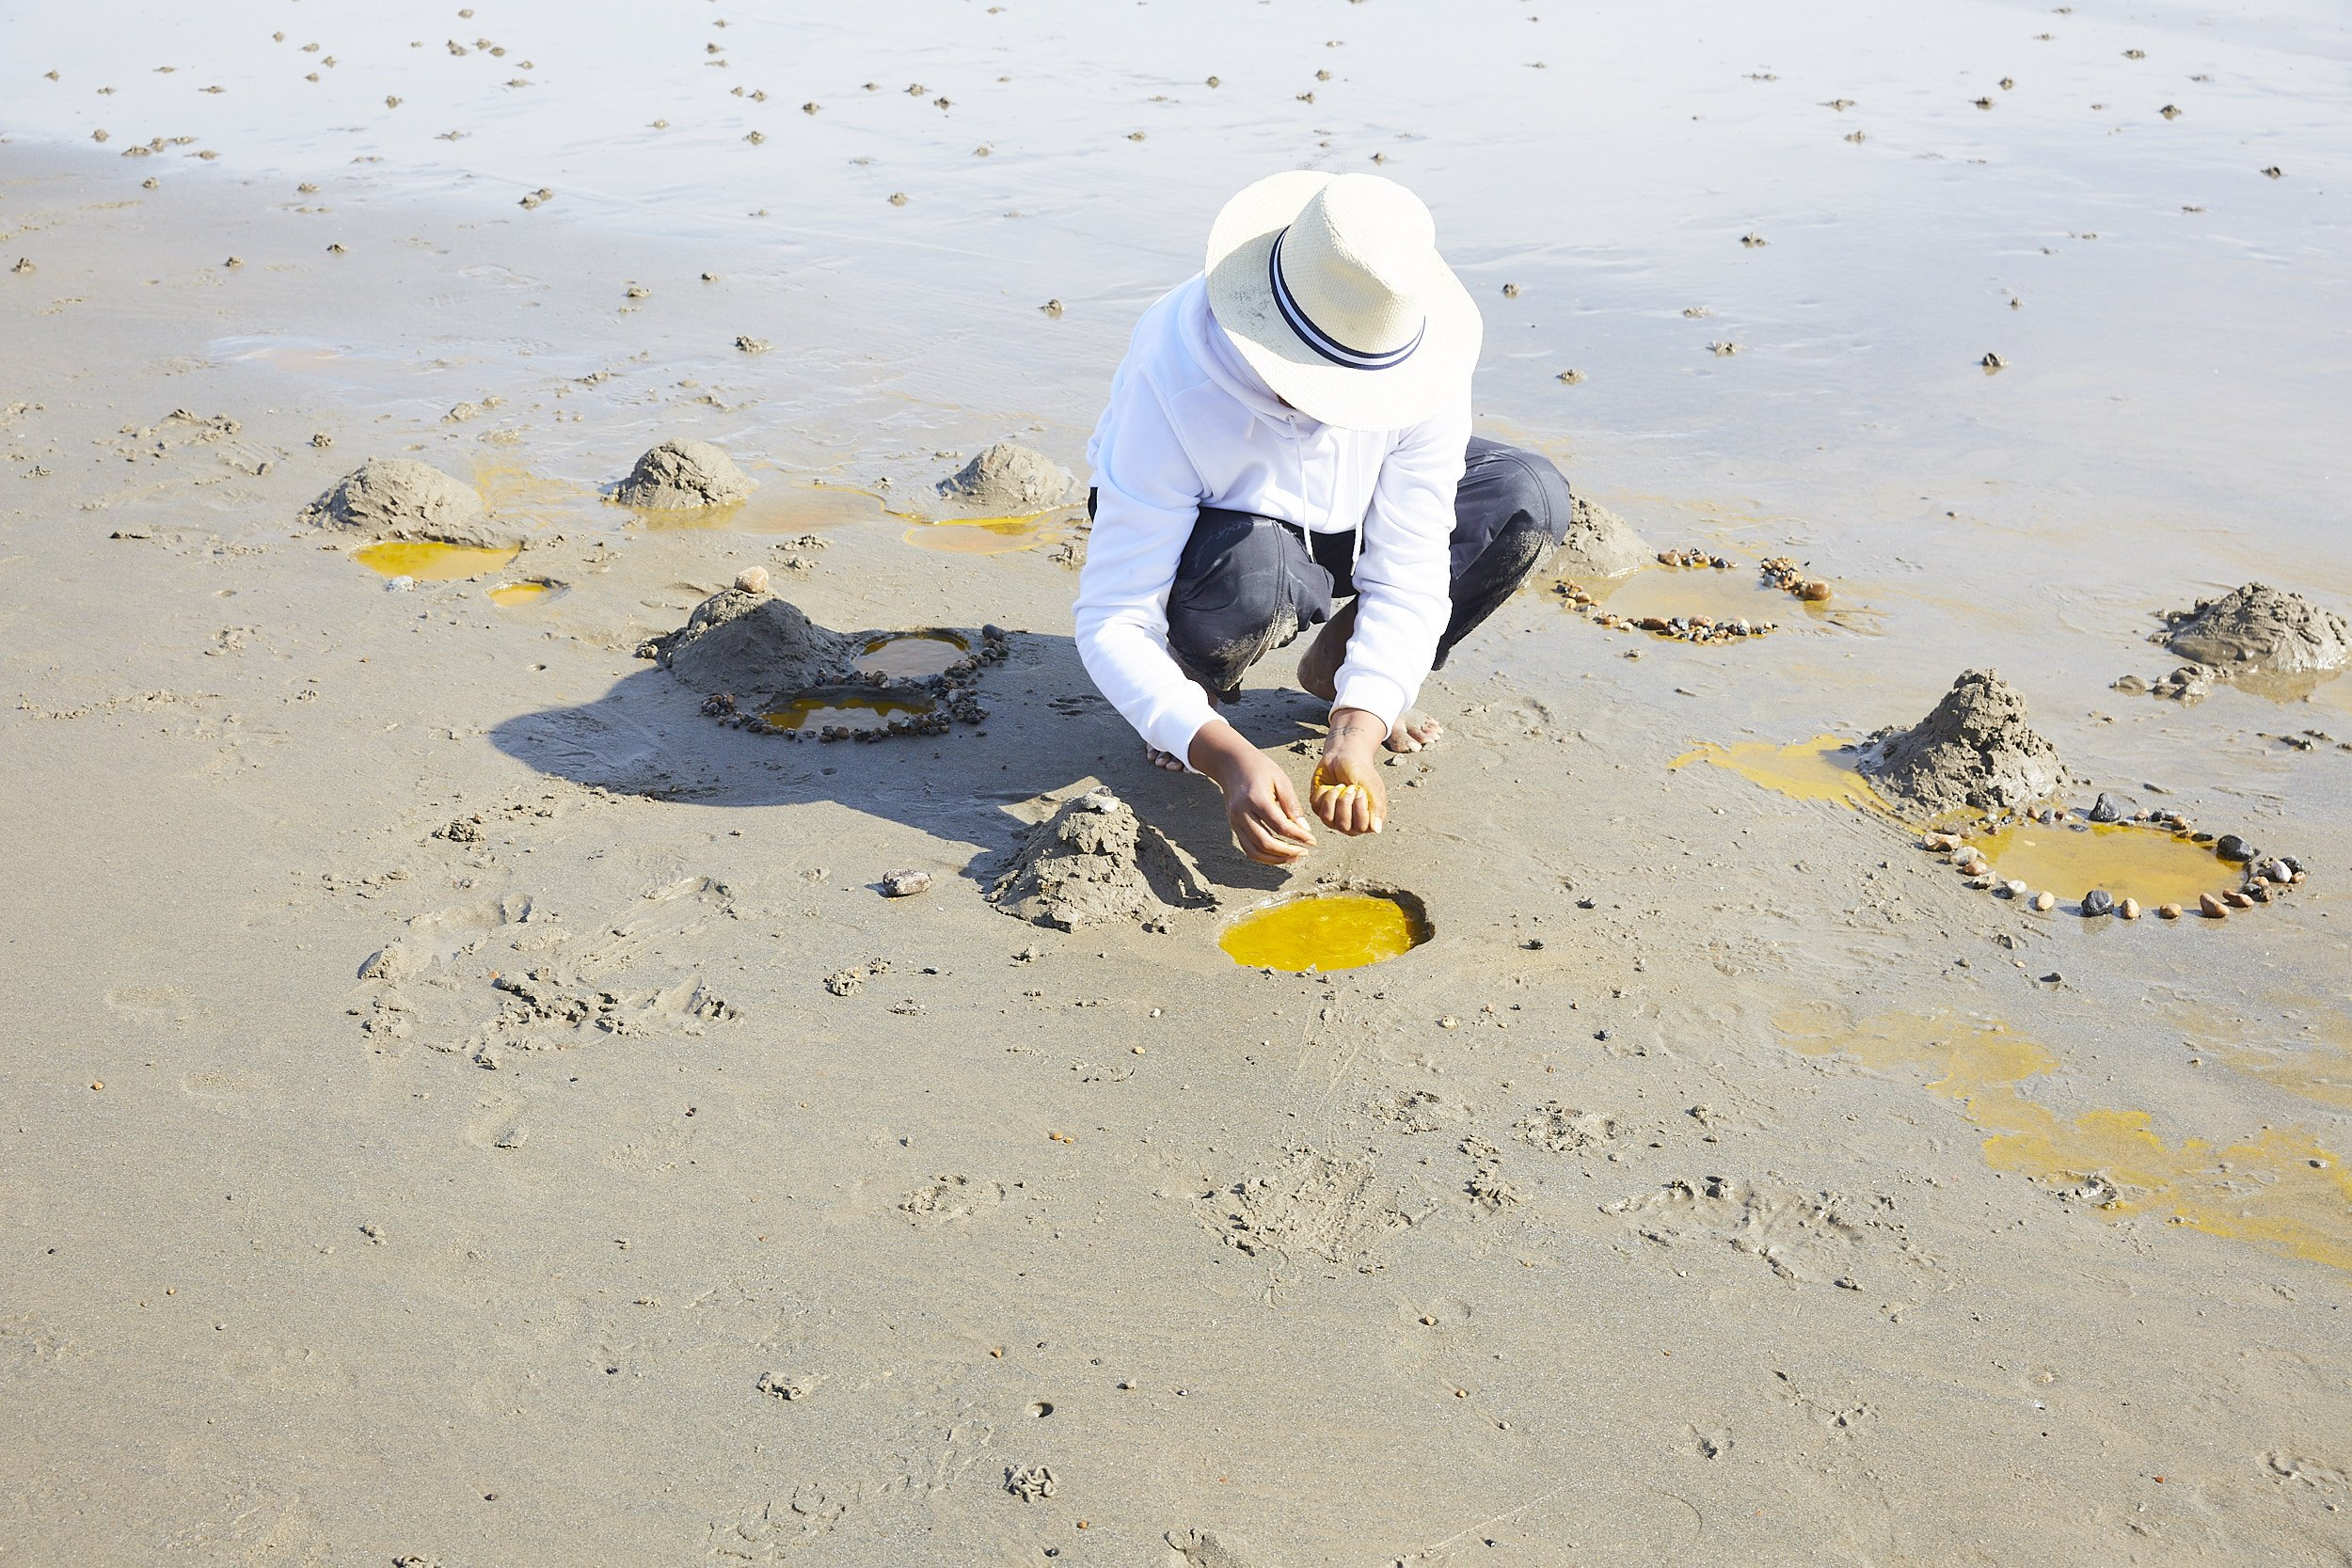 The artist kneeling by a circular tidal pool, adding yellow colouring to the water. Several other yellow pools and mounds of sand dot the shoreline.